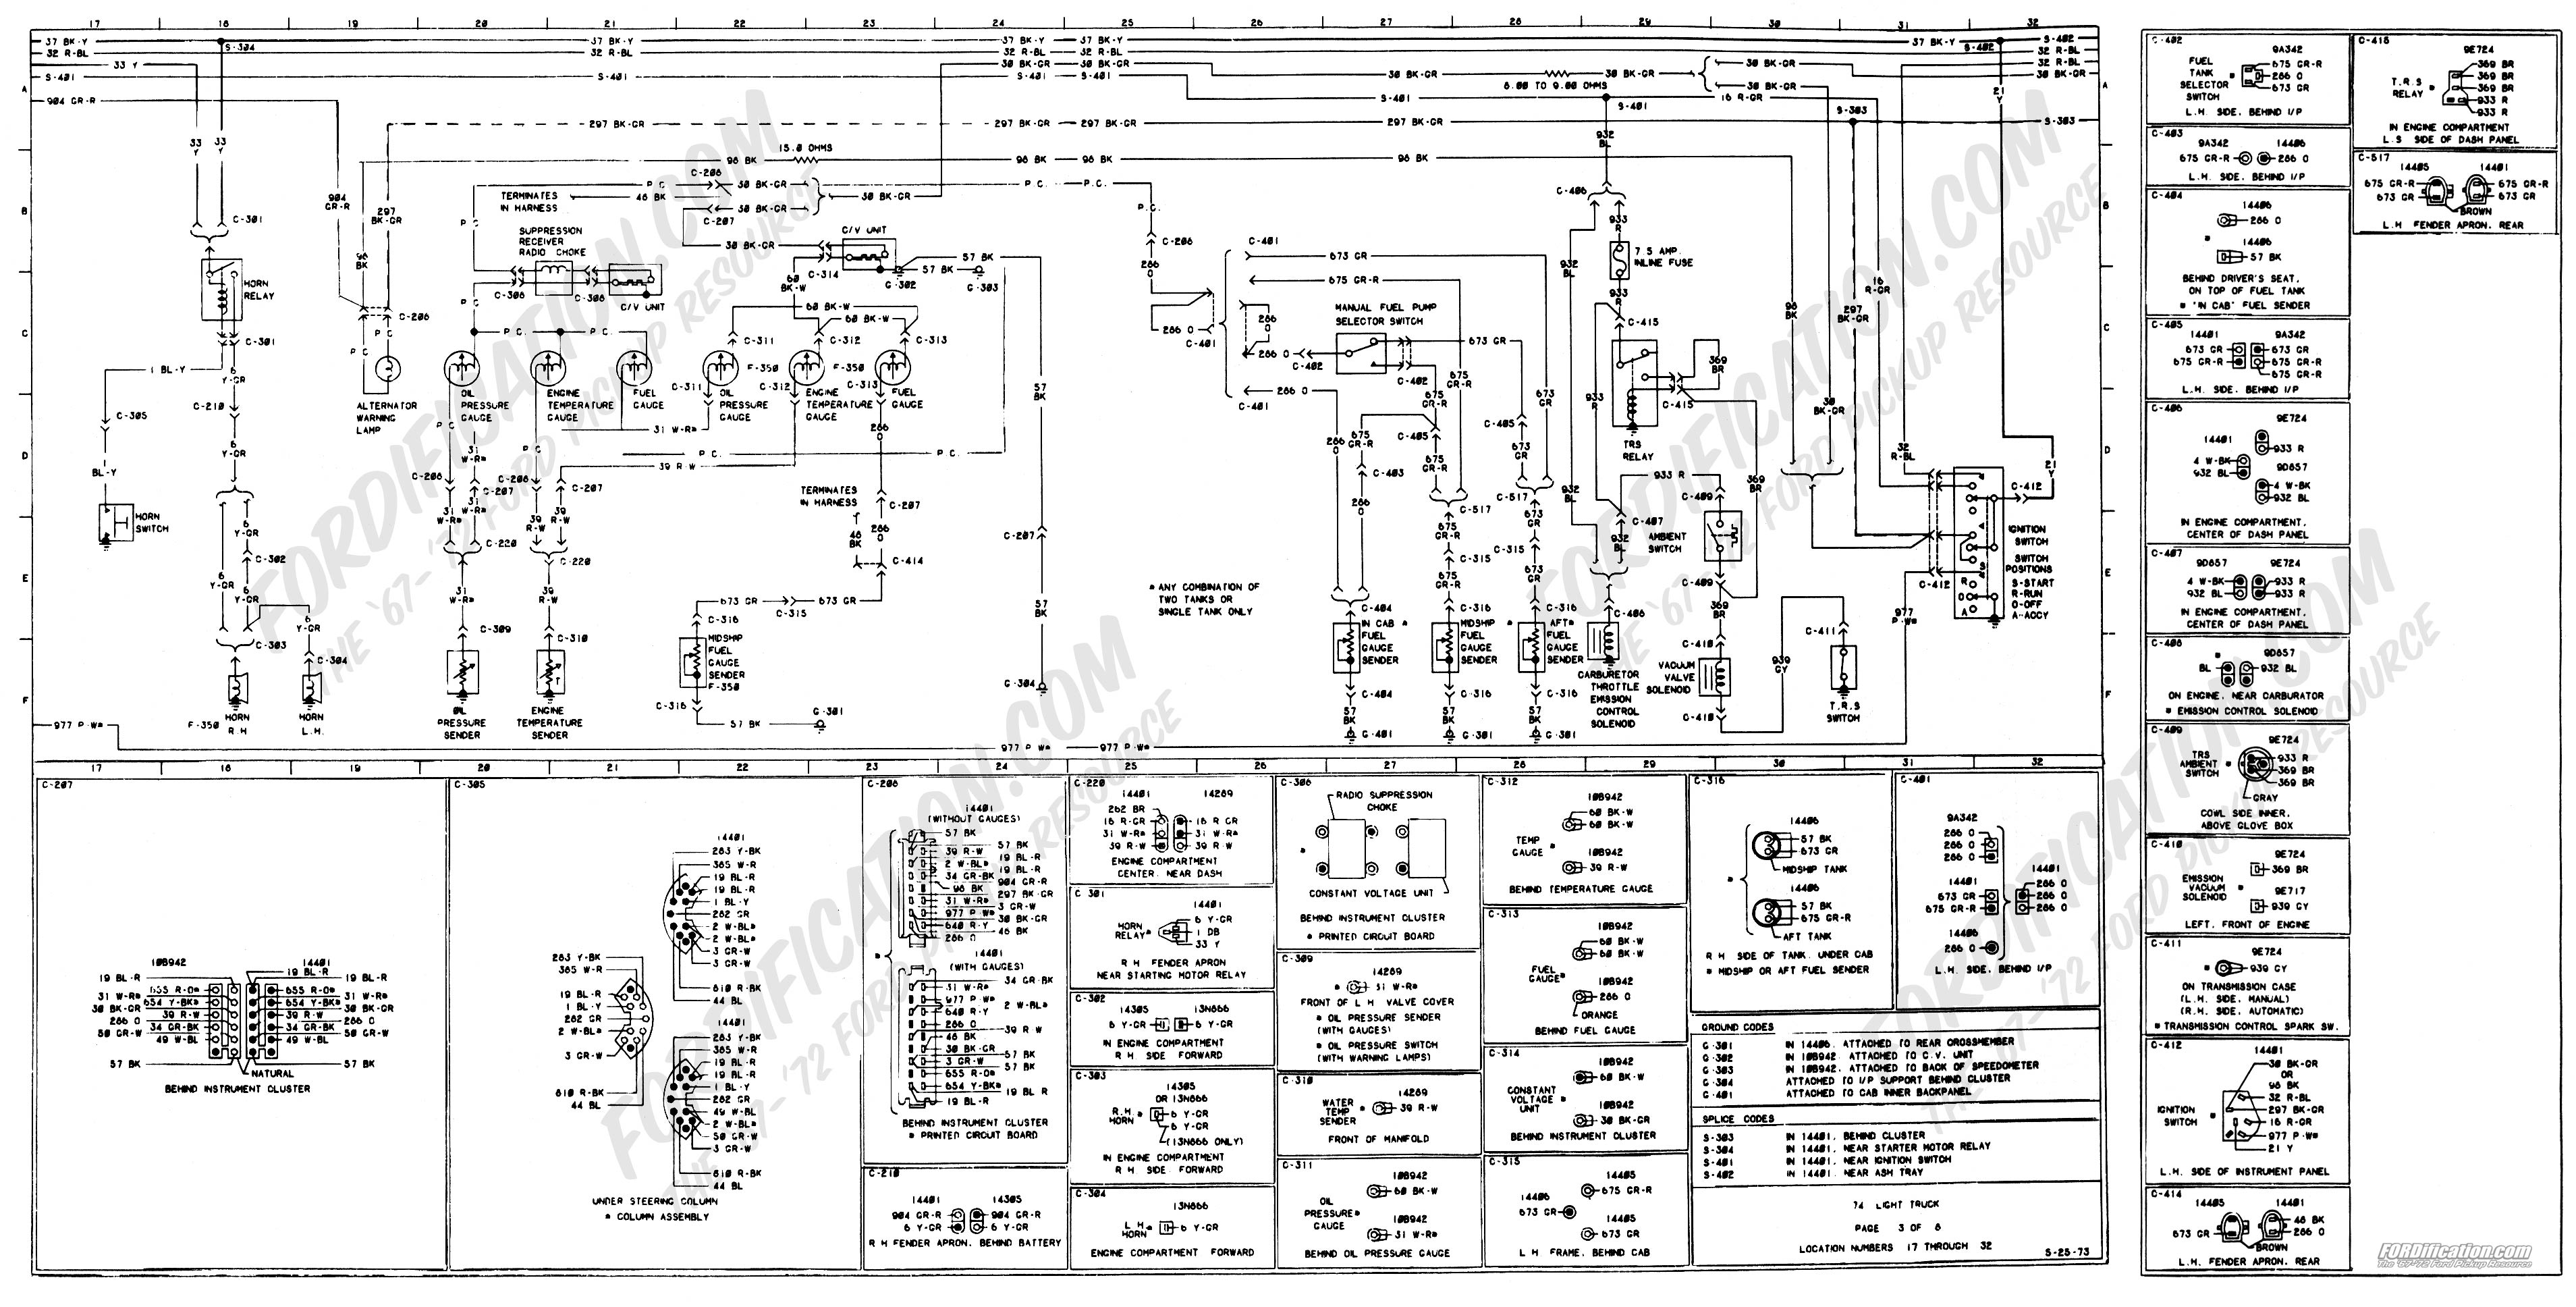 wiring_74master_3of8 1973 1979 ford truck wiring diagrams & schematics fordification net wiring diagram schematic at alyssarenee.co